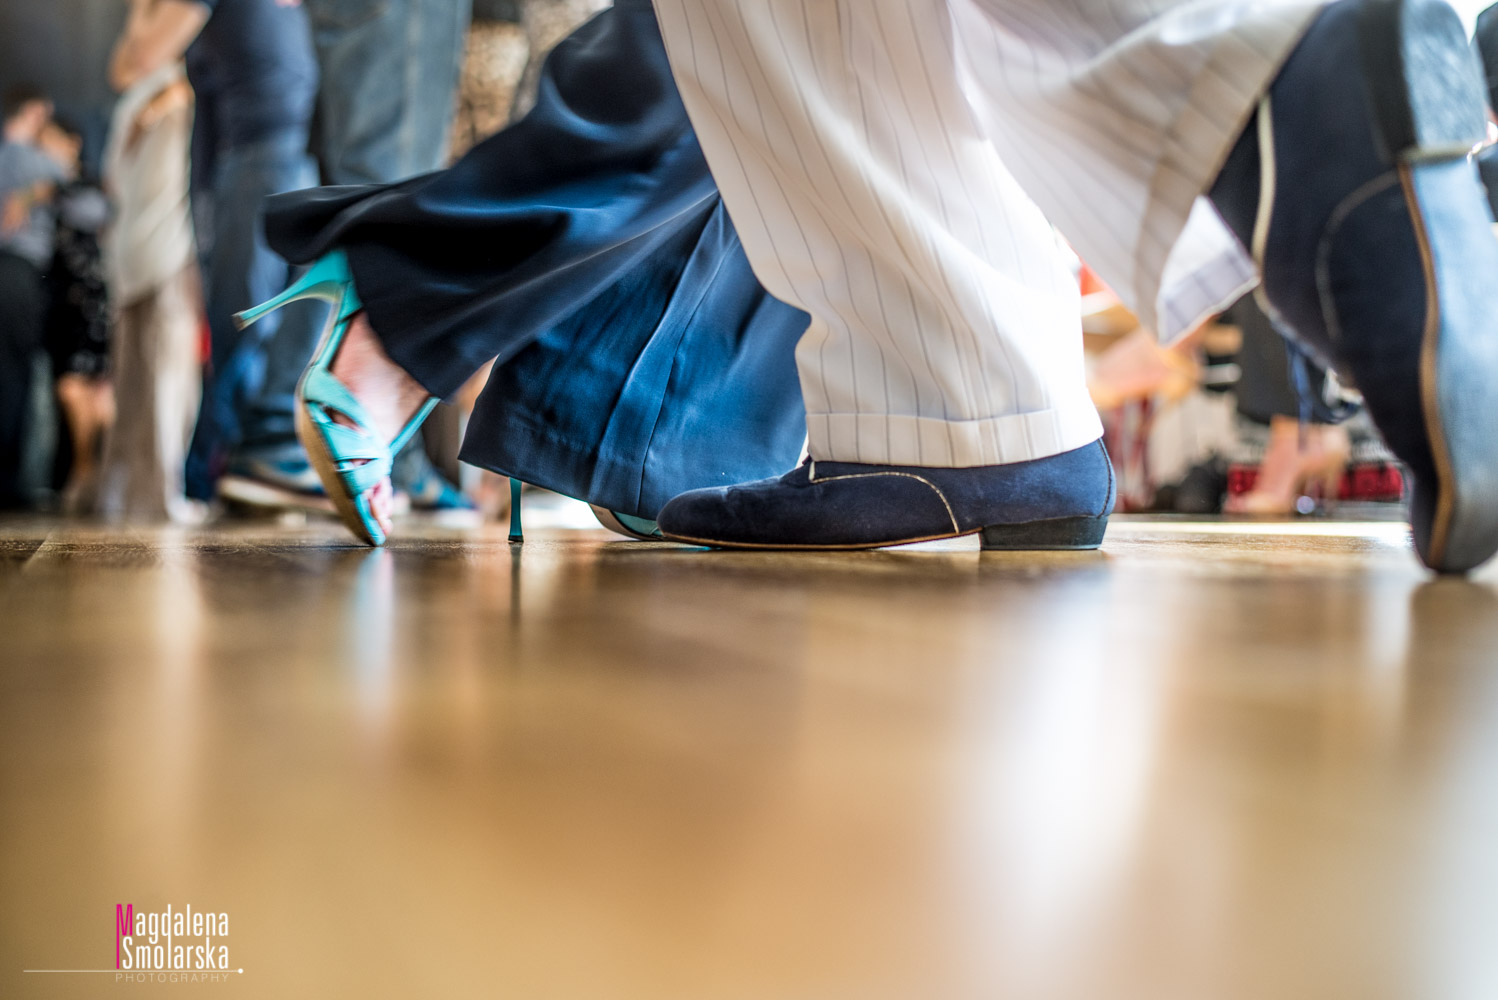 Dancing shoes and movement